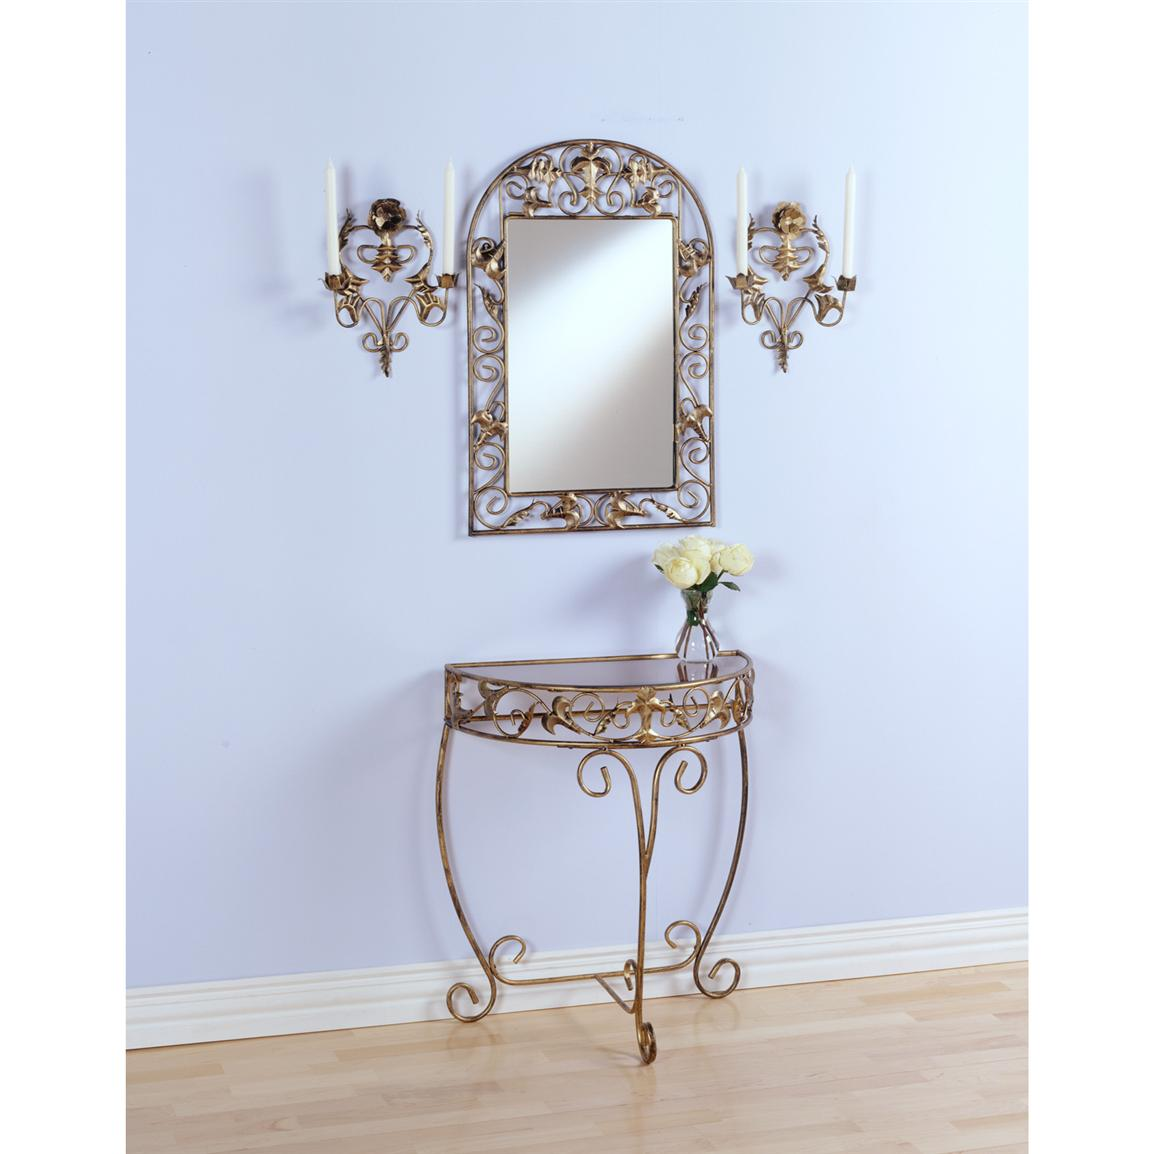 Mirror Sconces Wall Decor : 4-Pc. Gold Console / Mirror / Sconce Set - 48029, Wall Art at Sportsman s Guide